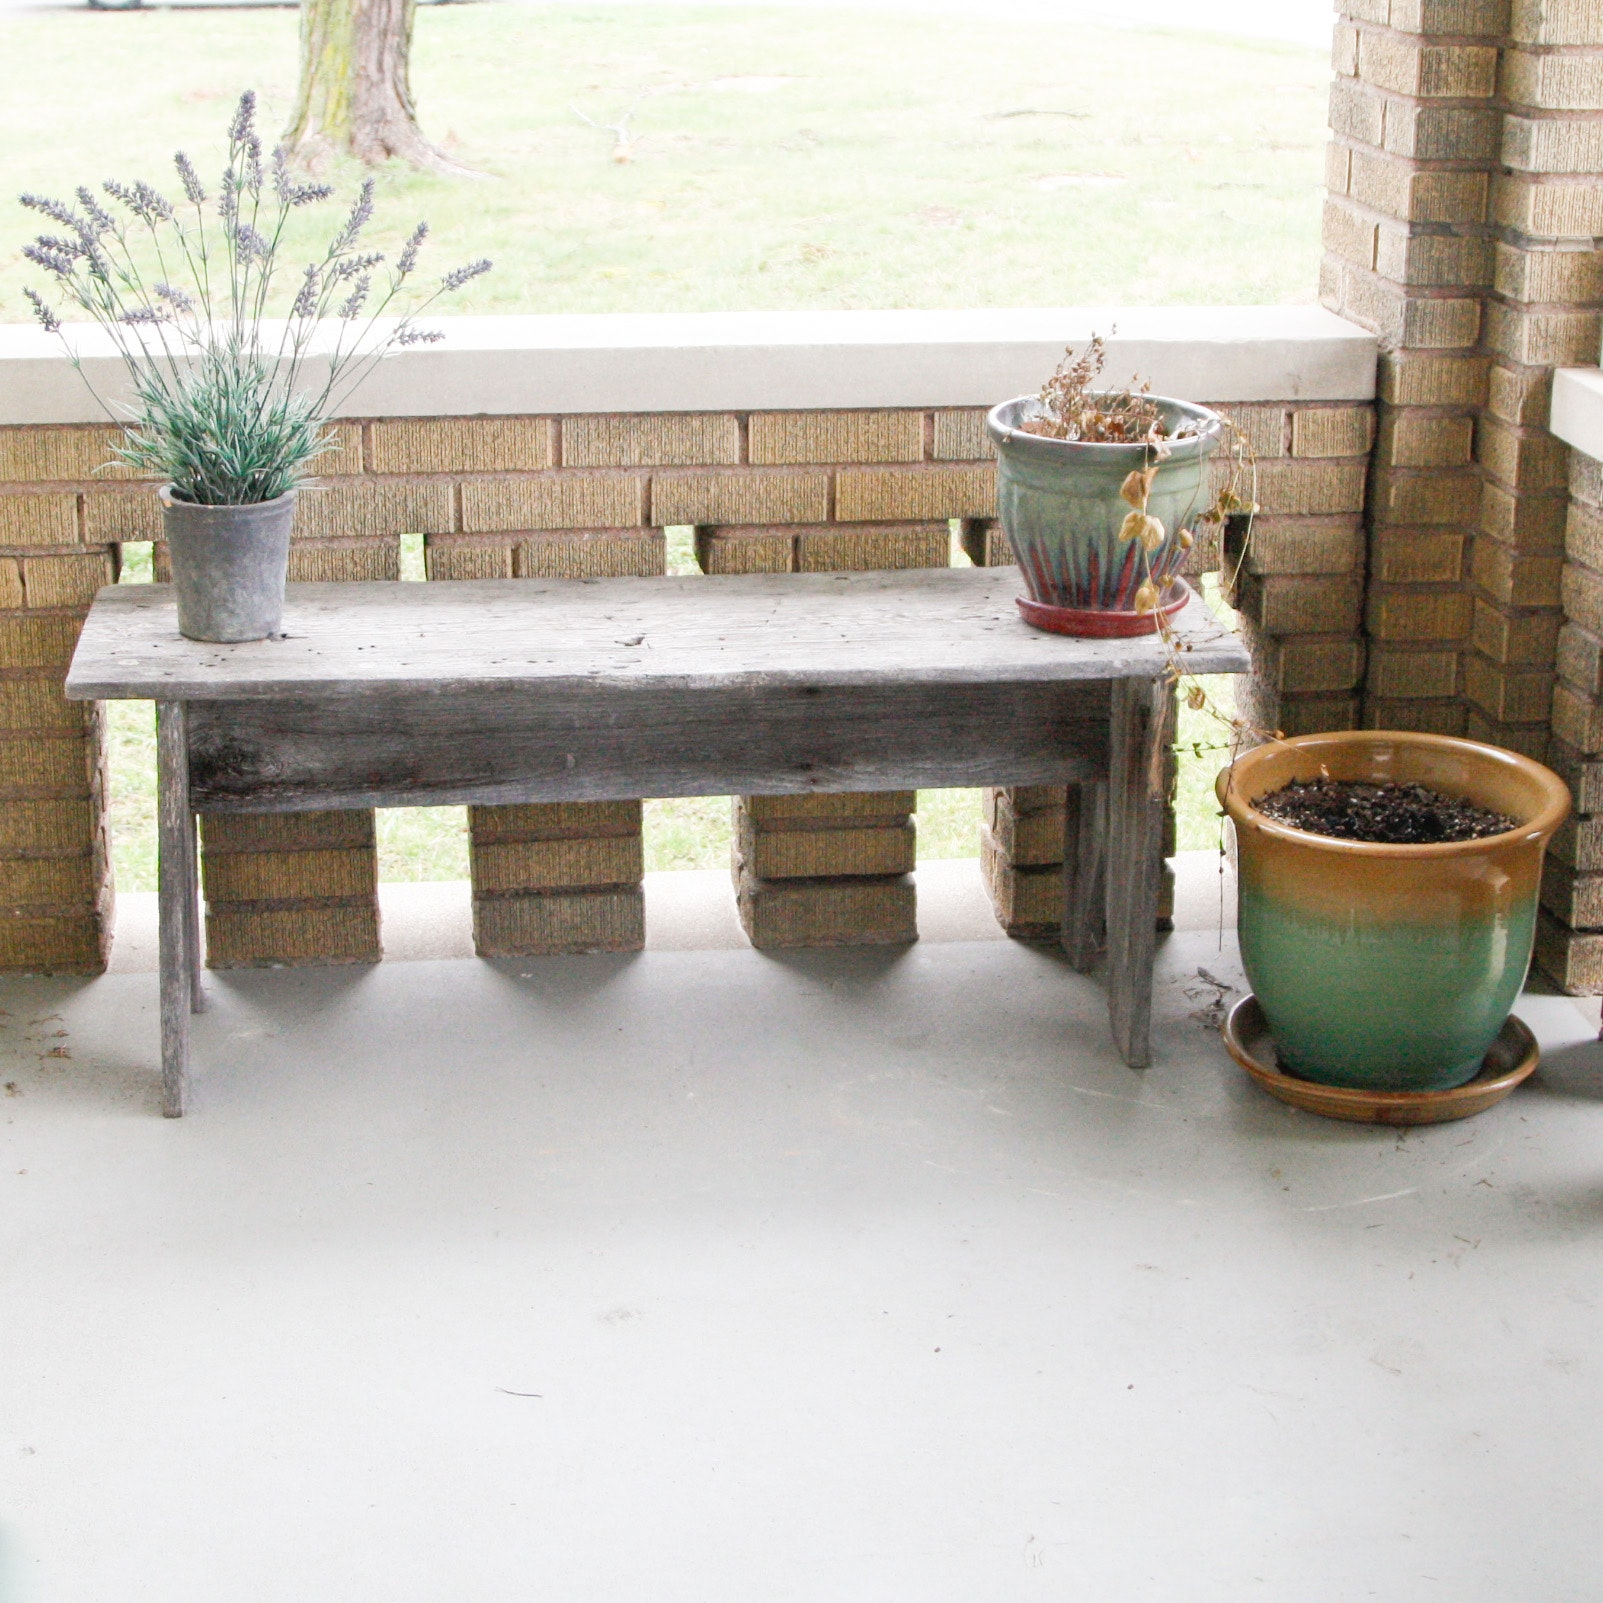 Primitive Wooden Bench with Planters